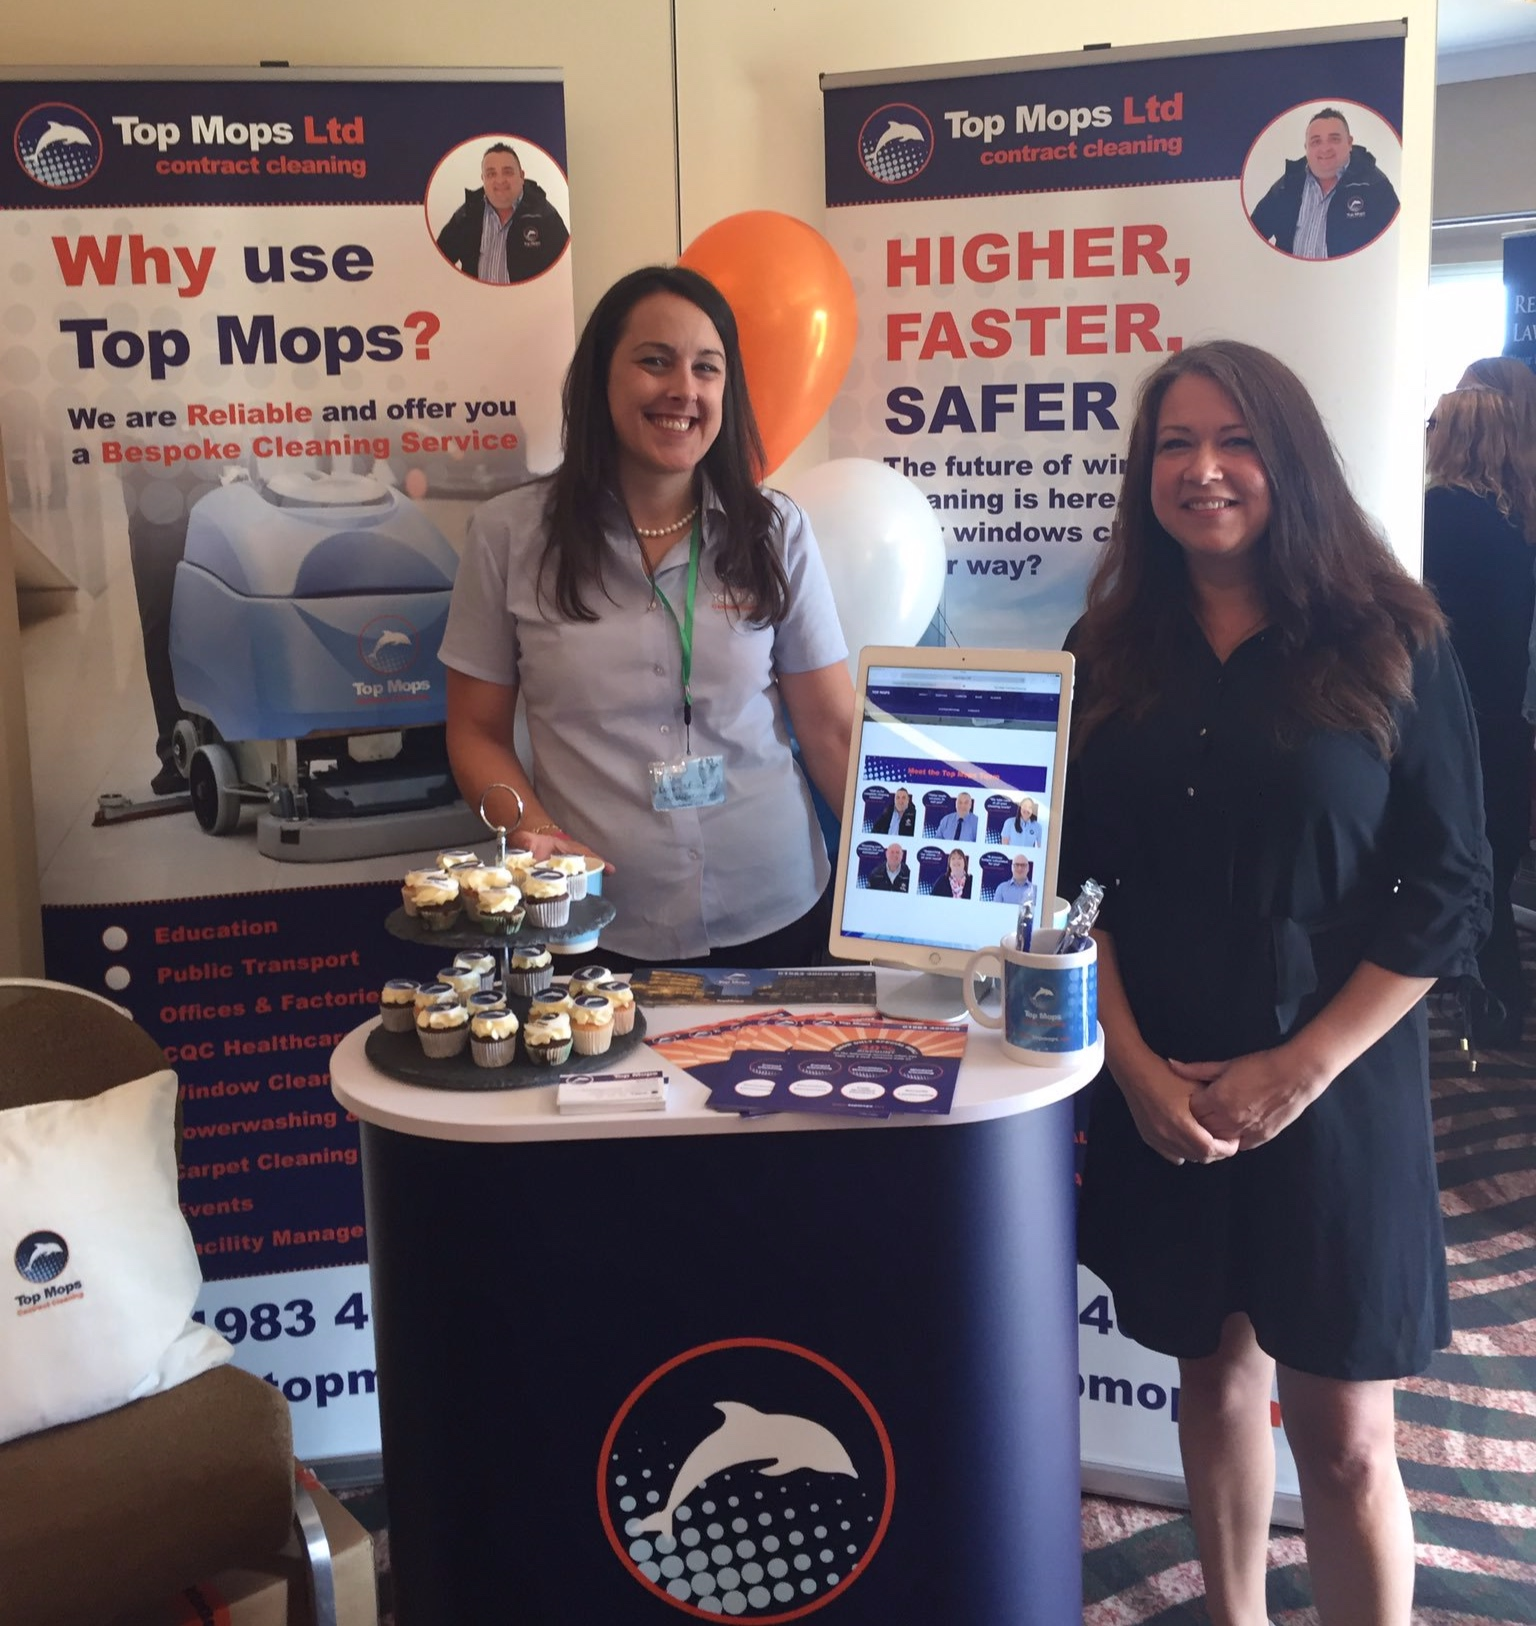 EXHIBITION MATERIALS - Reception desk, pull up banners, website, teaser cards, leaflets, business cards, promotional mugs, promotional pens, branded cakes… all staples of brand consistency when exhibiting.(Left: Loren, Top Mops. Right: Susan, Smart in Design)